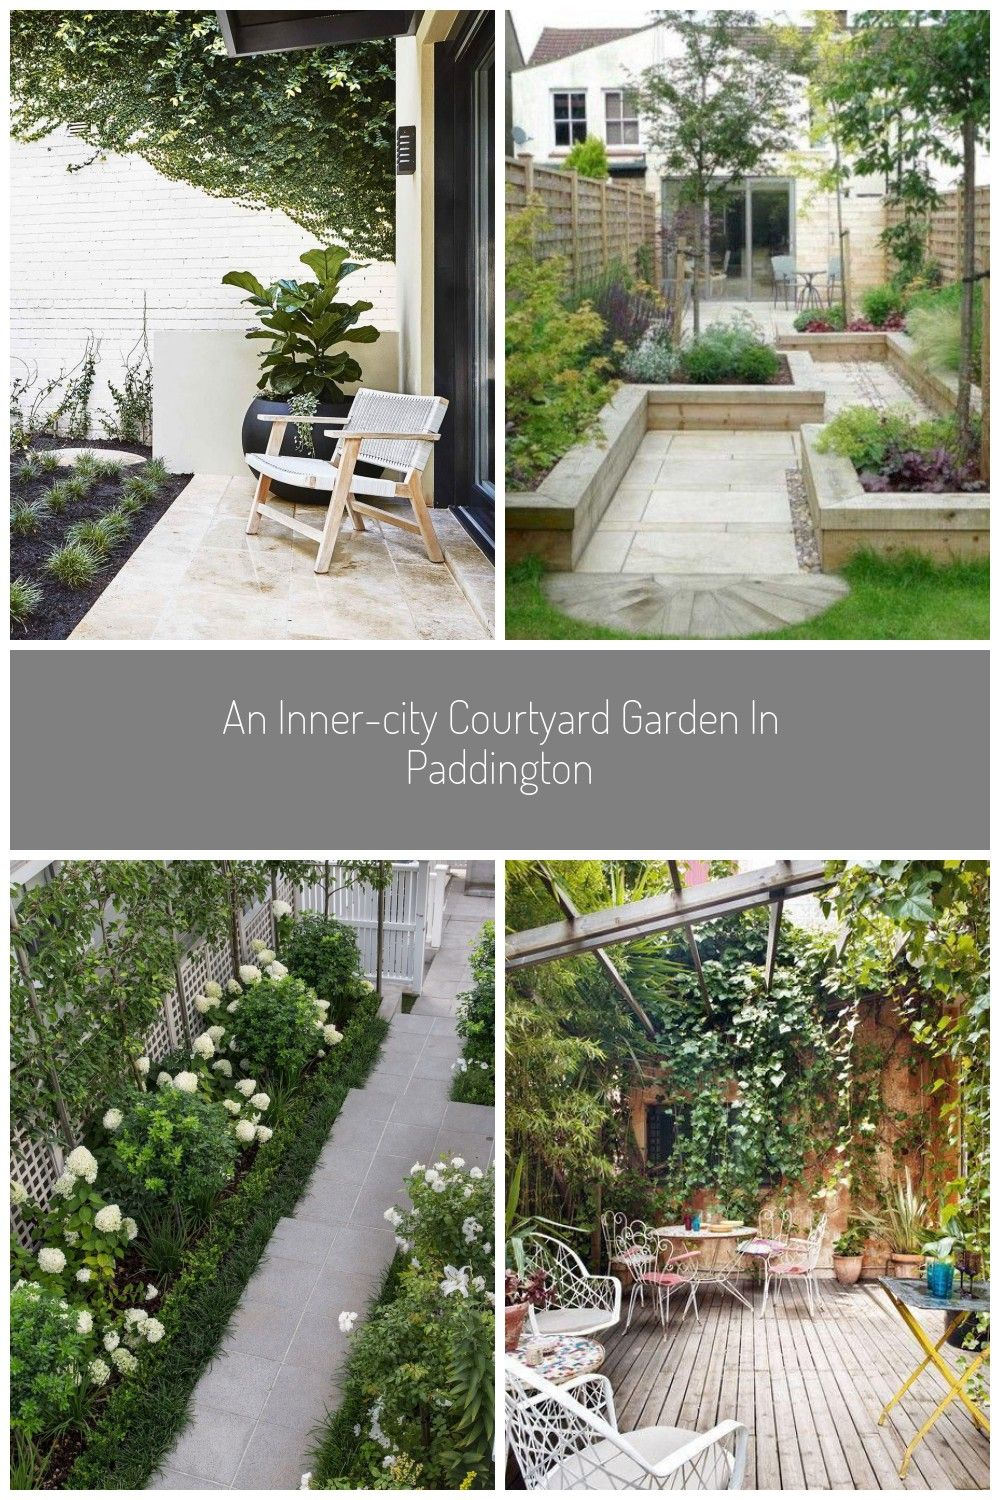 Fifth Season Landscapes smart use of space results in cohesive front and back entertaining zones in an innercity courtyard garden garden An innercity courtyard garden in...